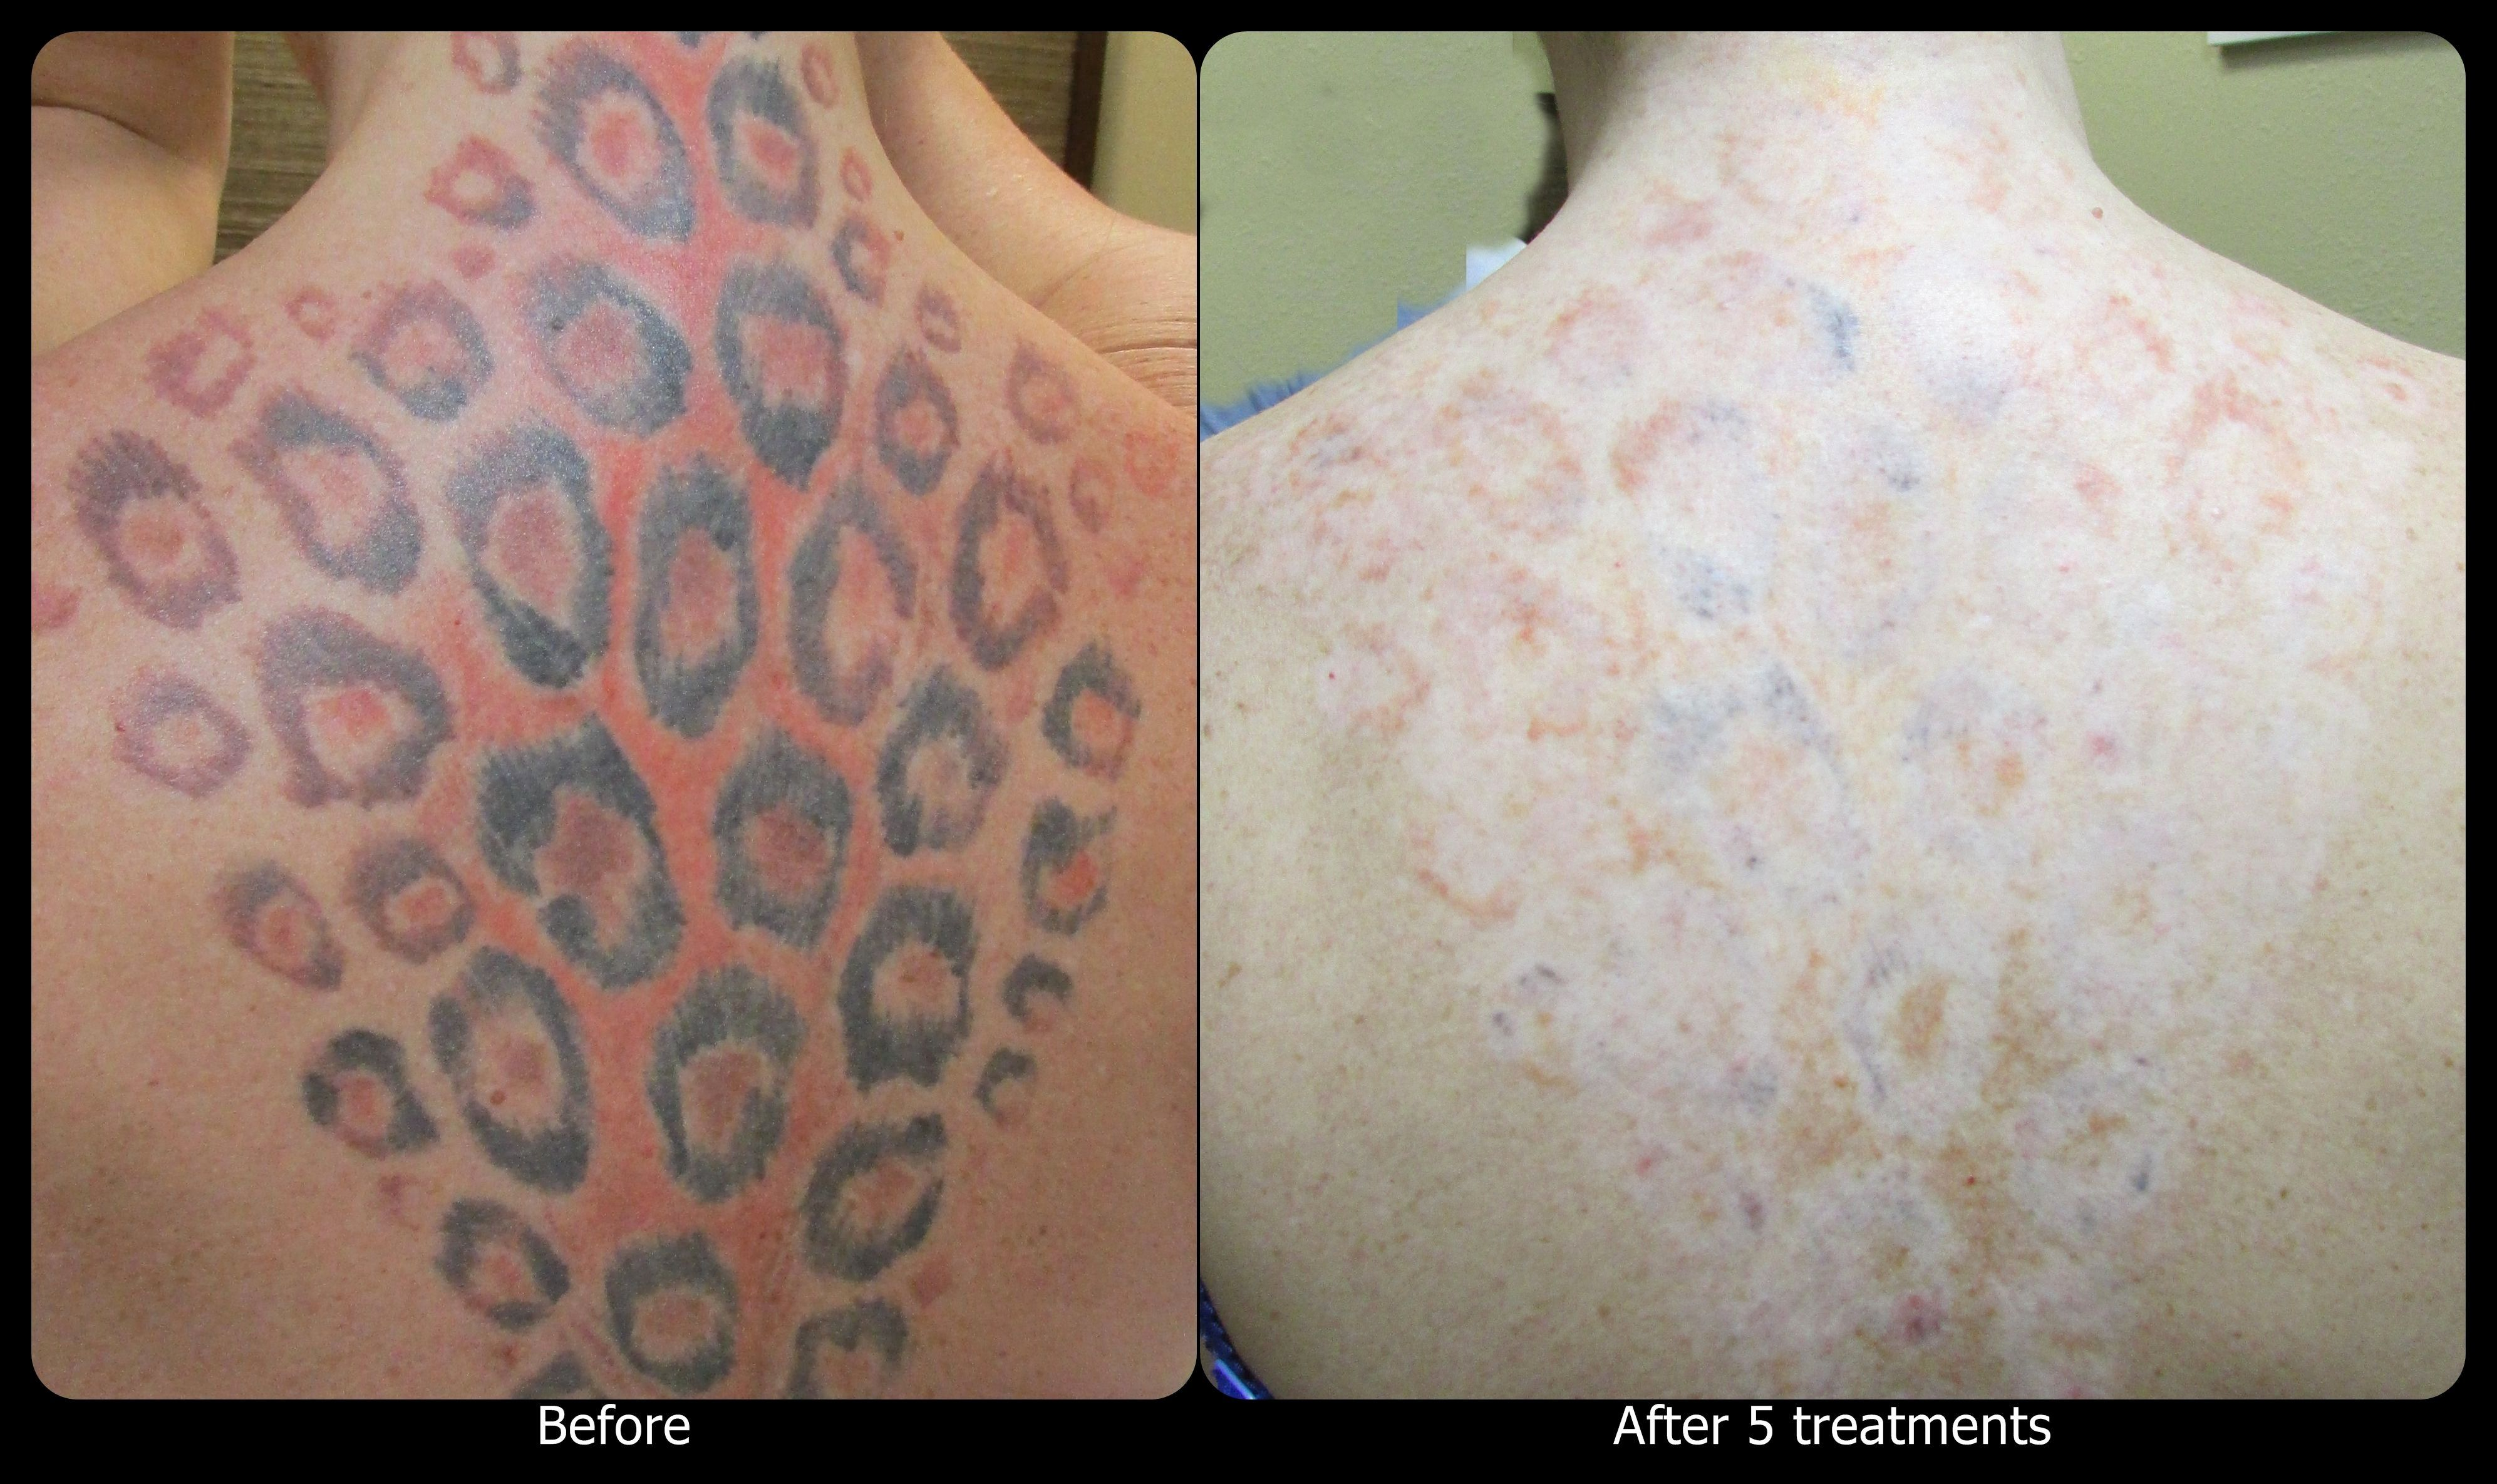 How Many Treatments For Laser Tattoo Removal Fresh This Client Is An Avid Tanner The Laser Used For The In 2020 Tattoo Removal Laser Tattoo Tattoo Removal Prices